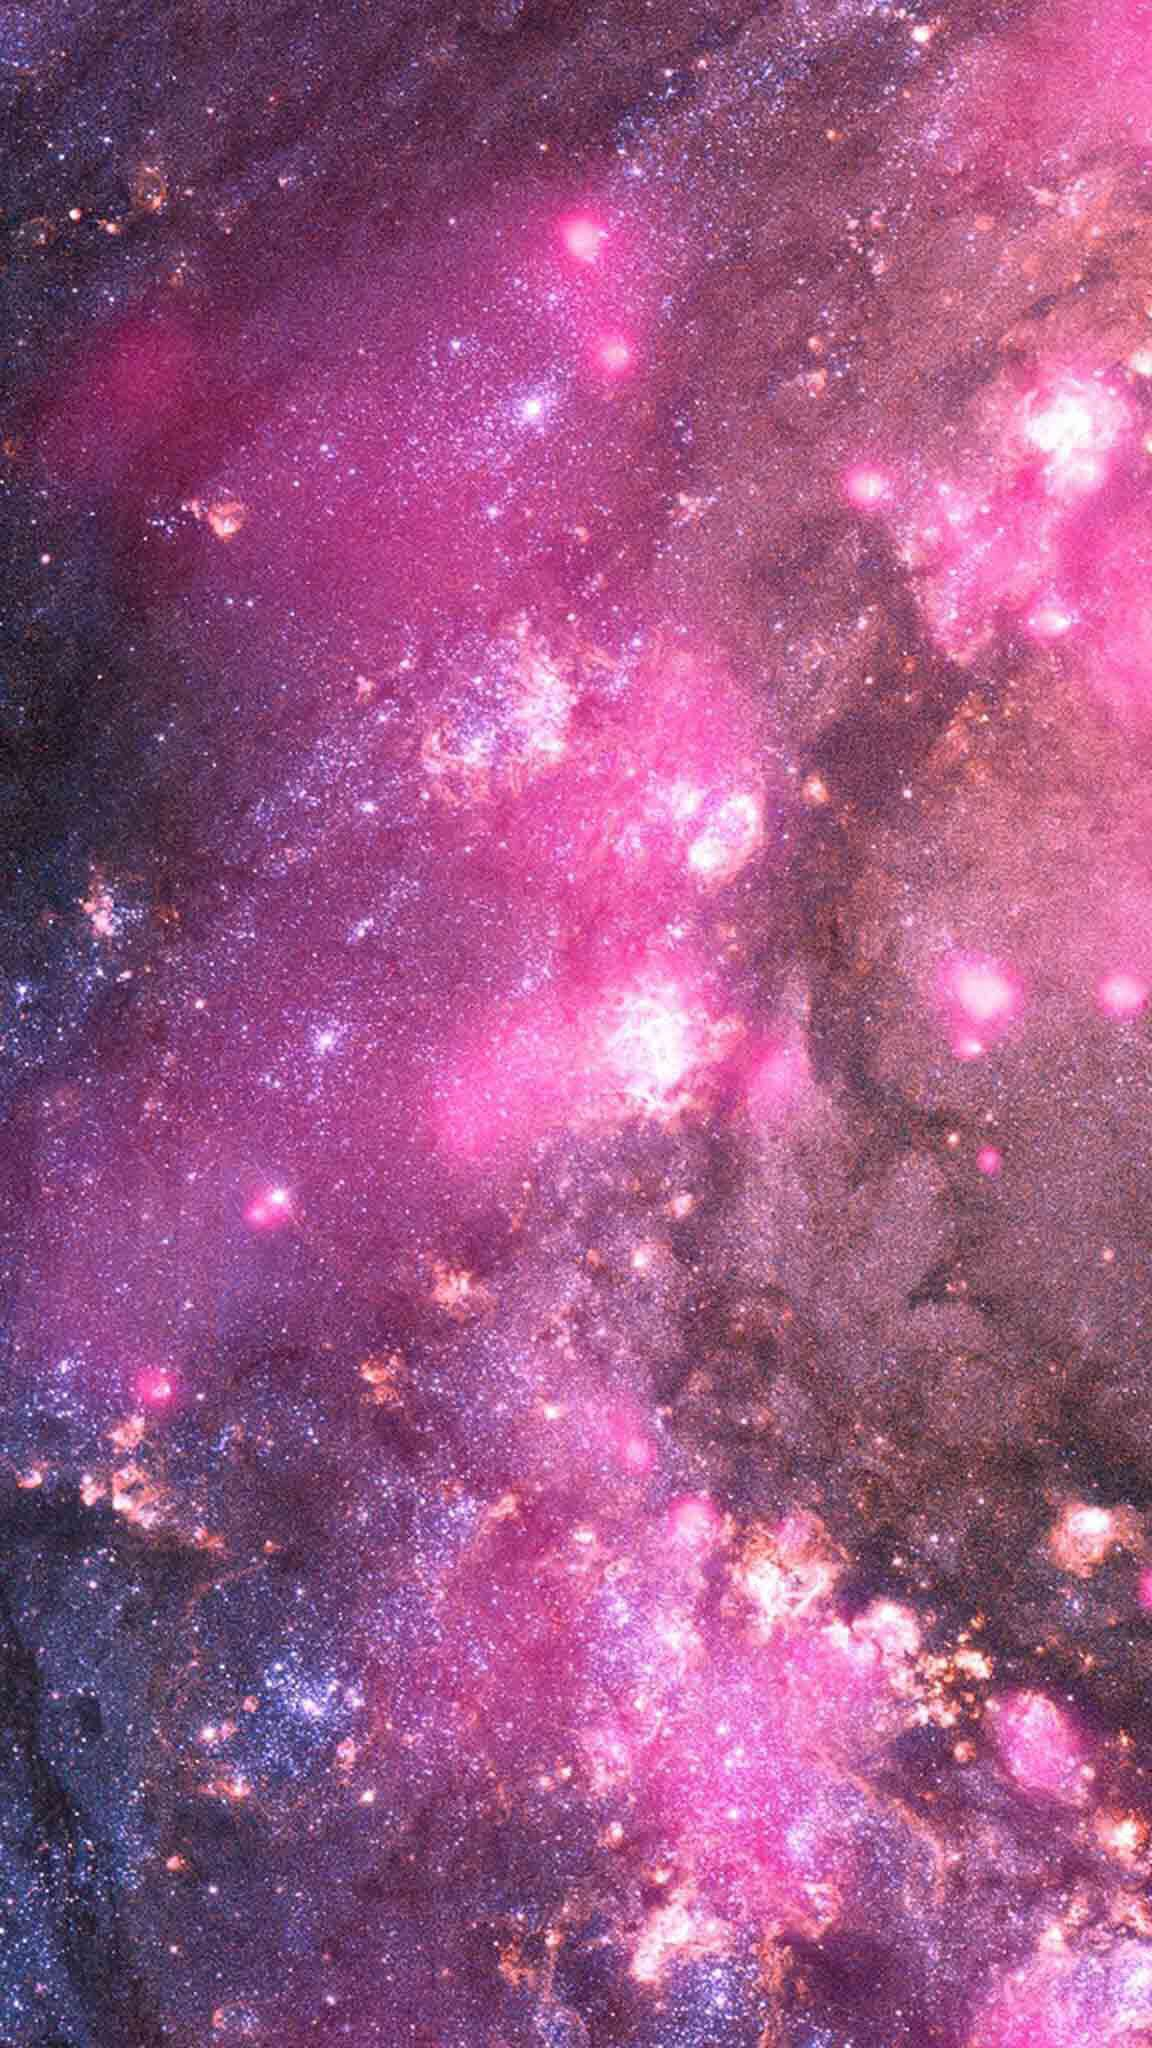 Space Pink Color Iphone Wallpaper Nebula Galaxy Wallpaper Iphone Purple Galaxy Wallpaper